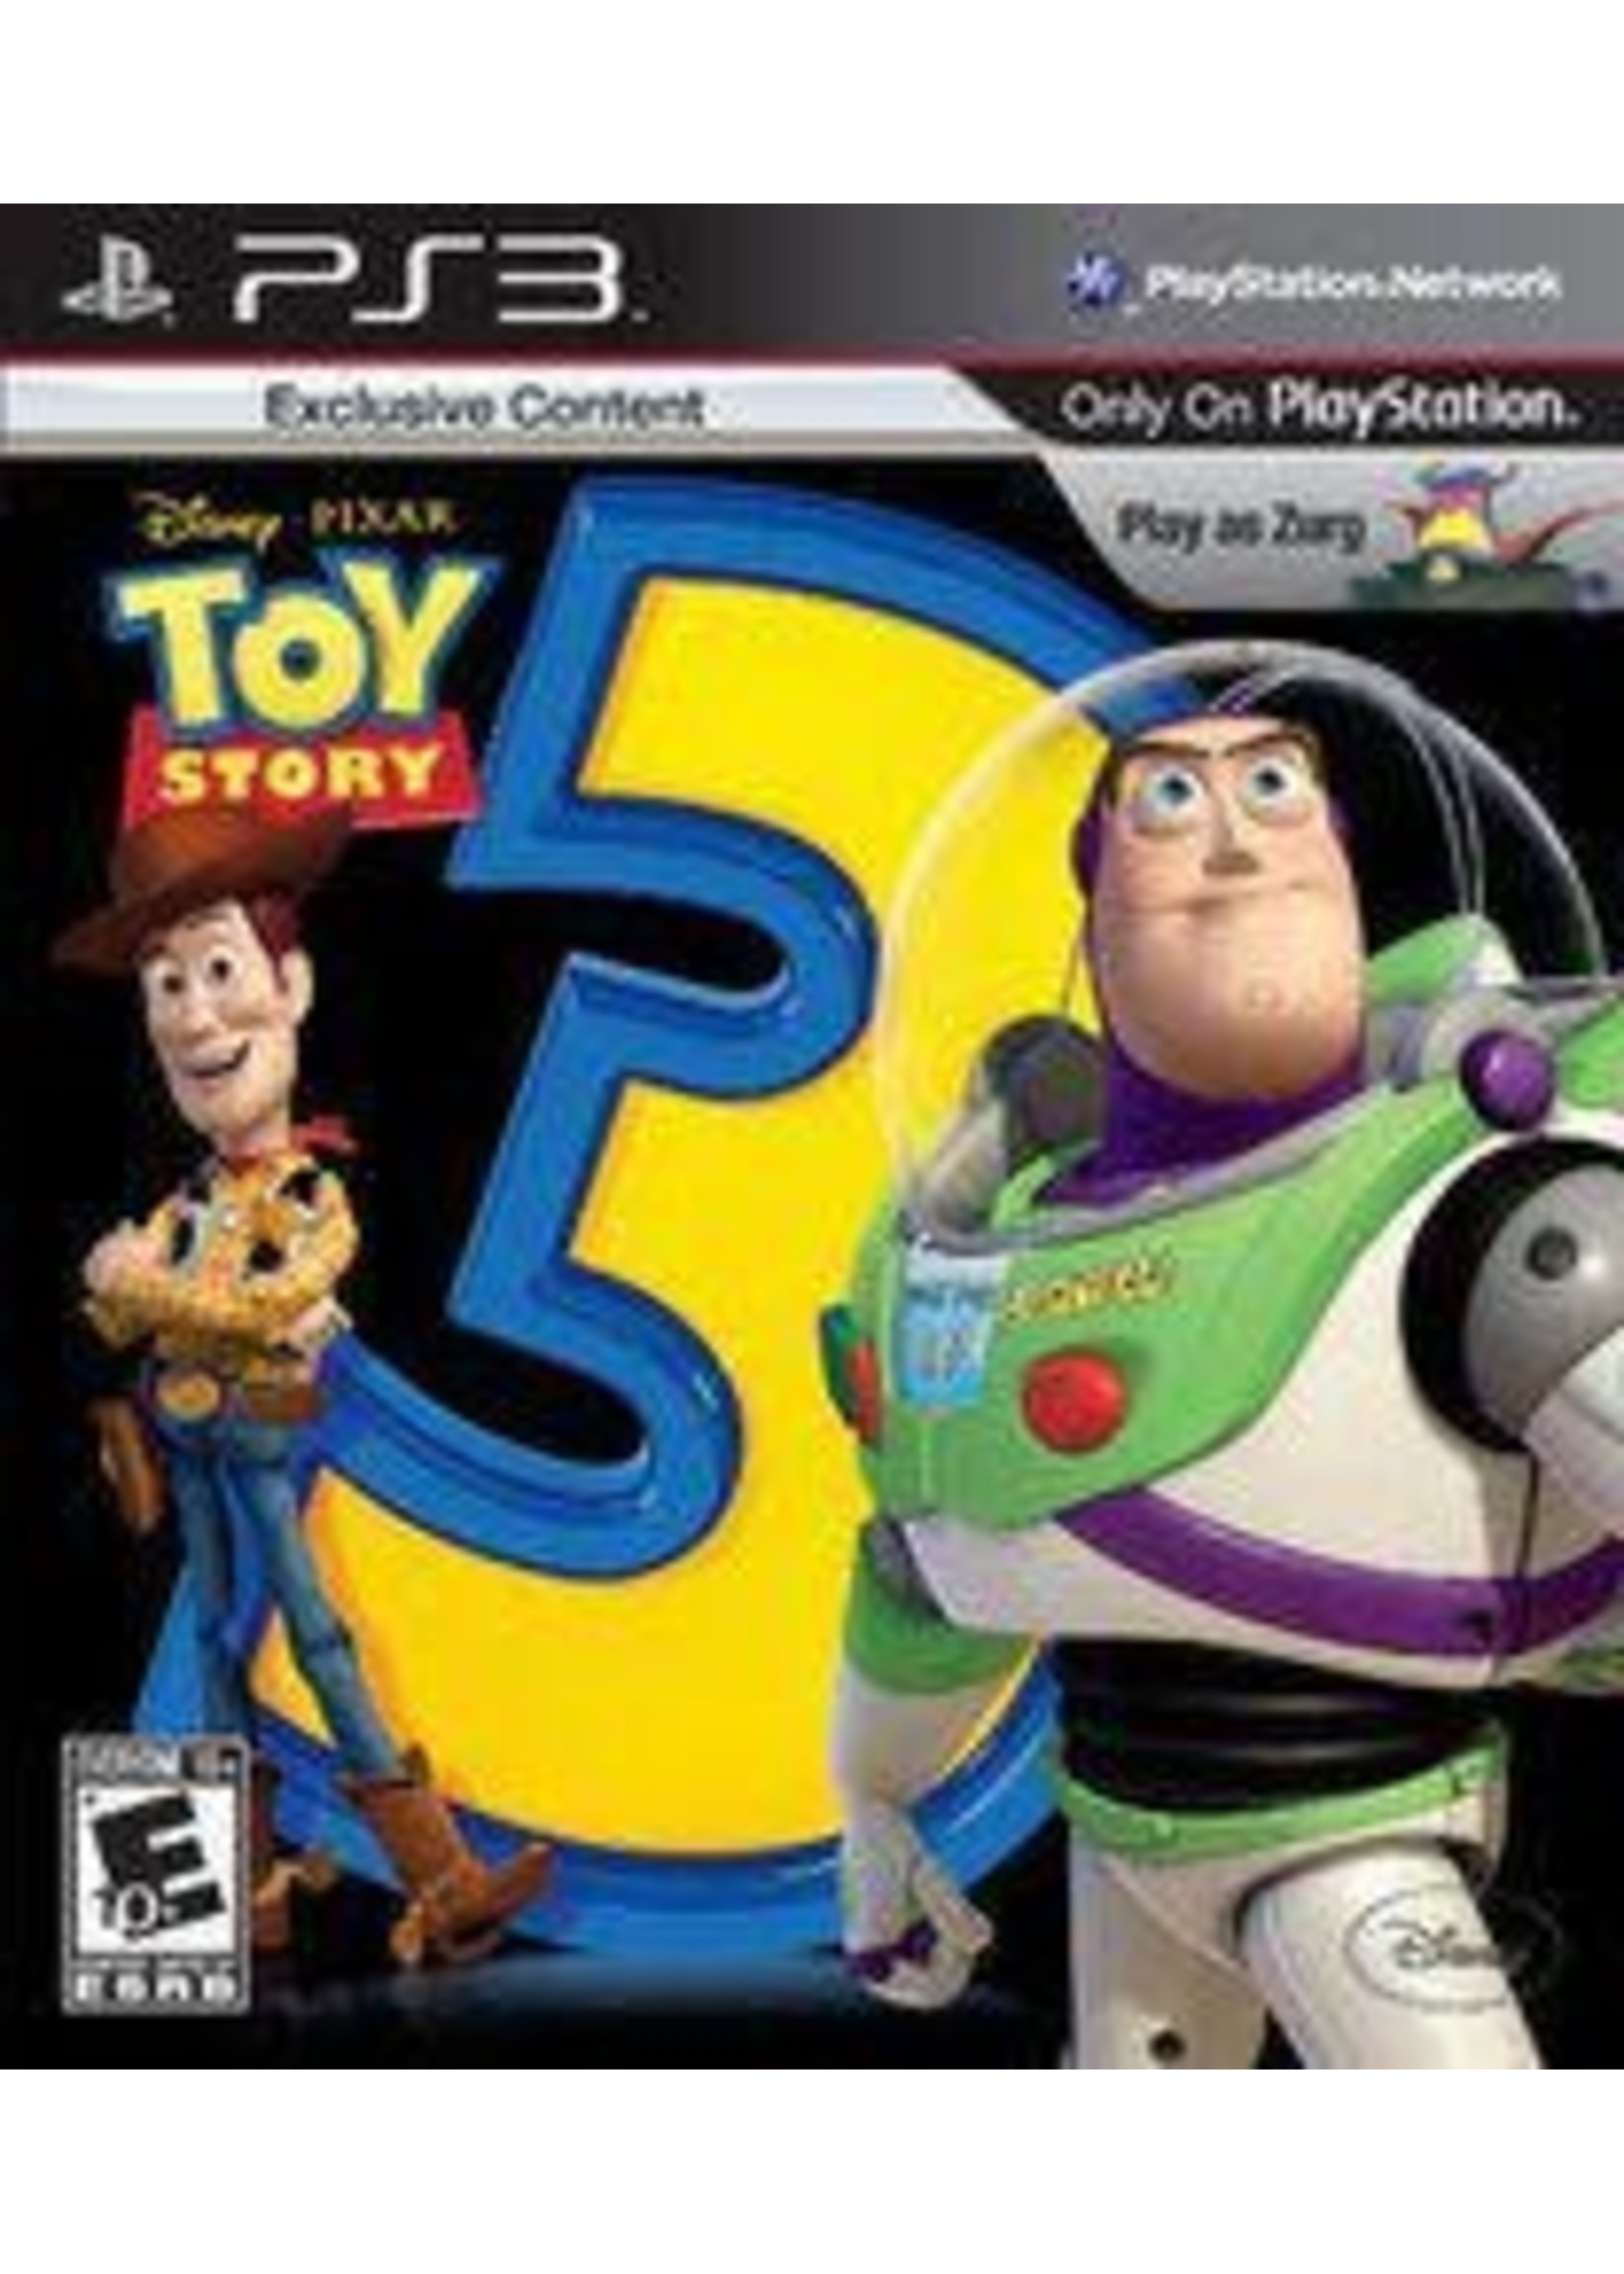 Toy Story 3: The Video Game Playstation 3